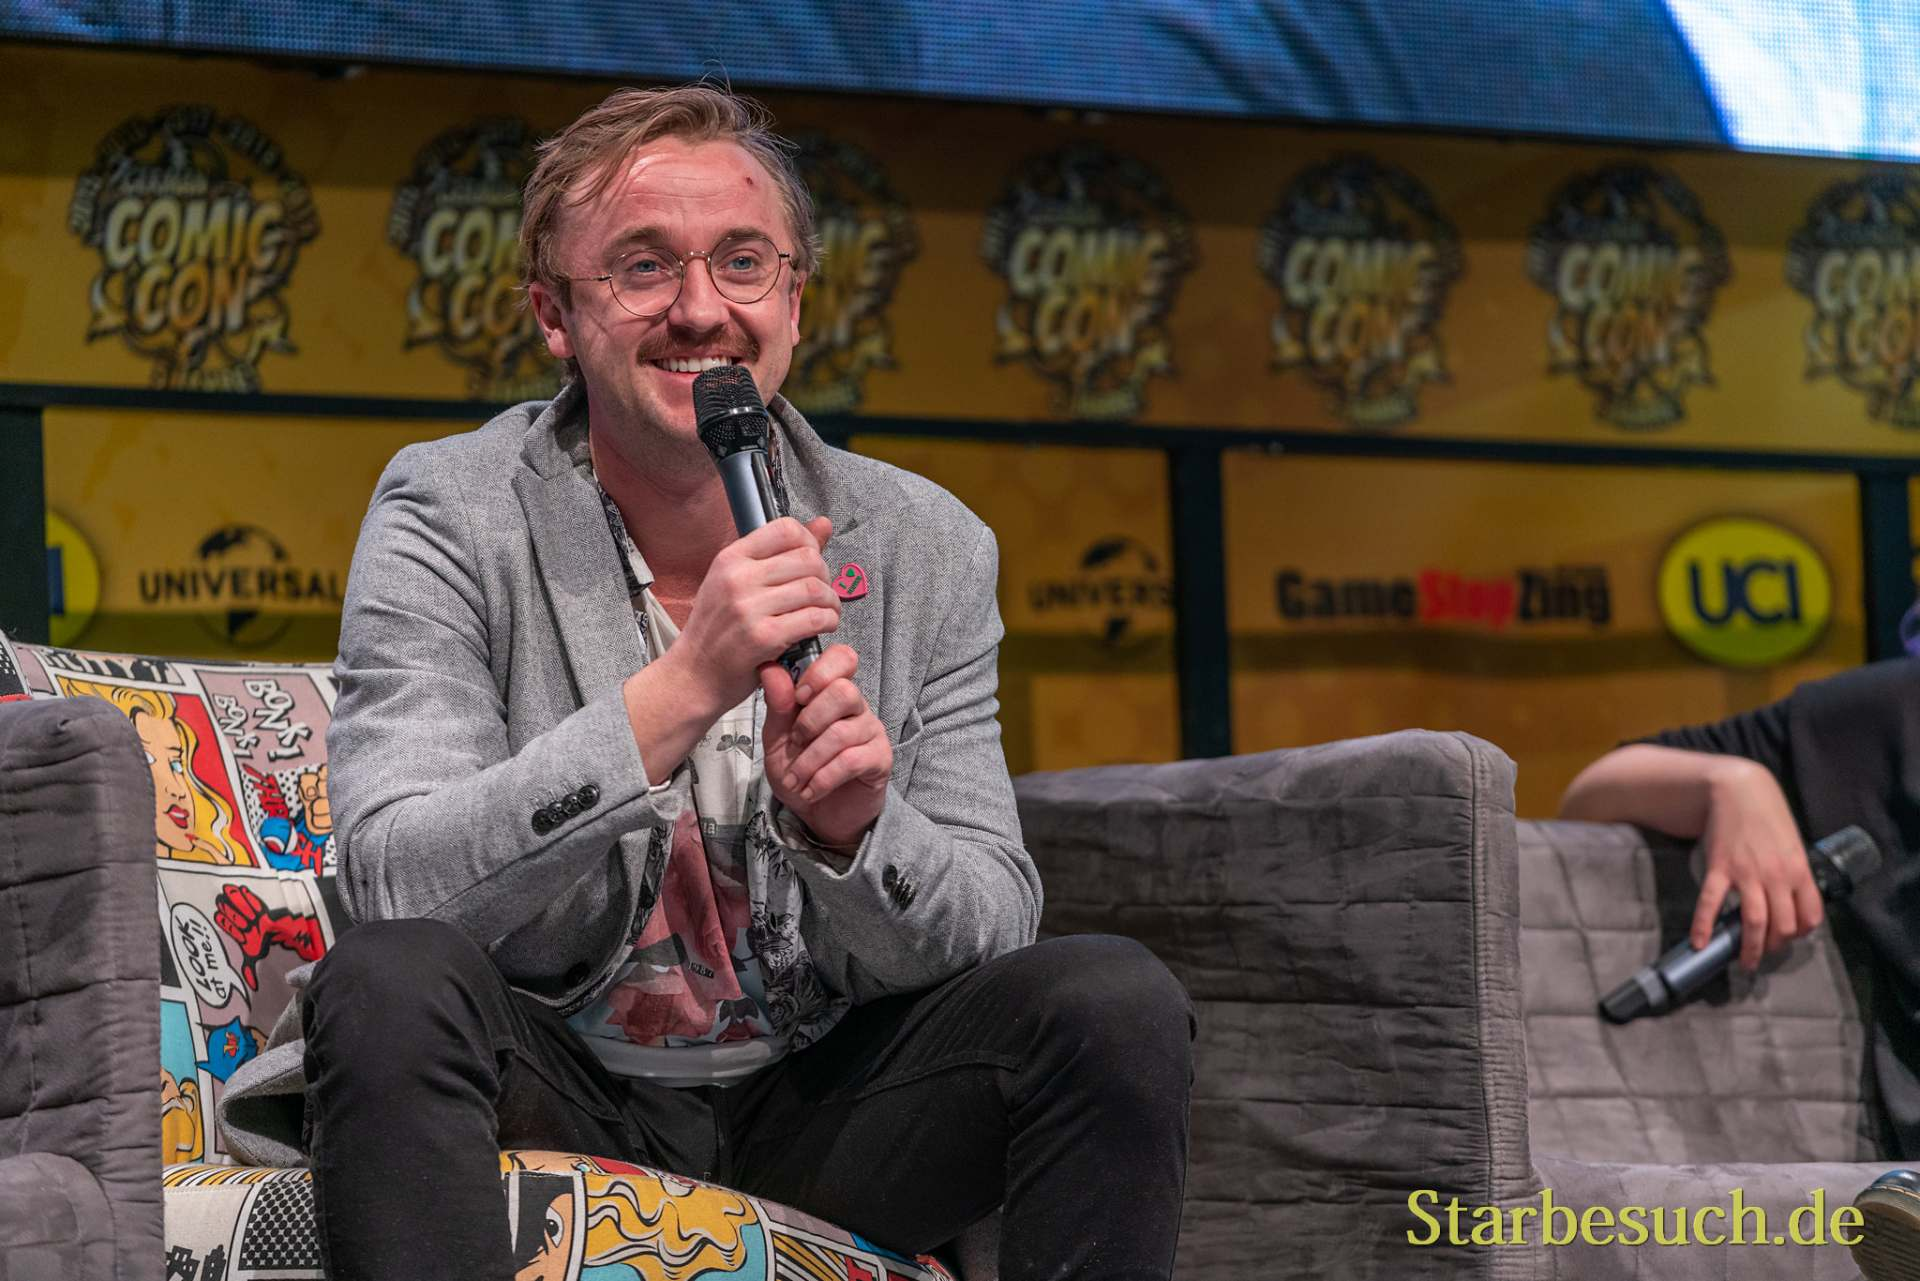 DORTMUND, GERMANY - December 7th 2019: Tom Felton at German Comic Con Dortmund